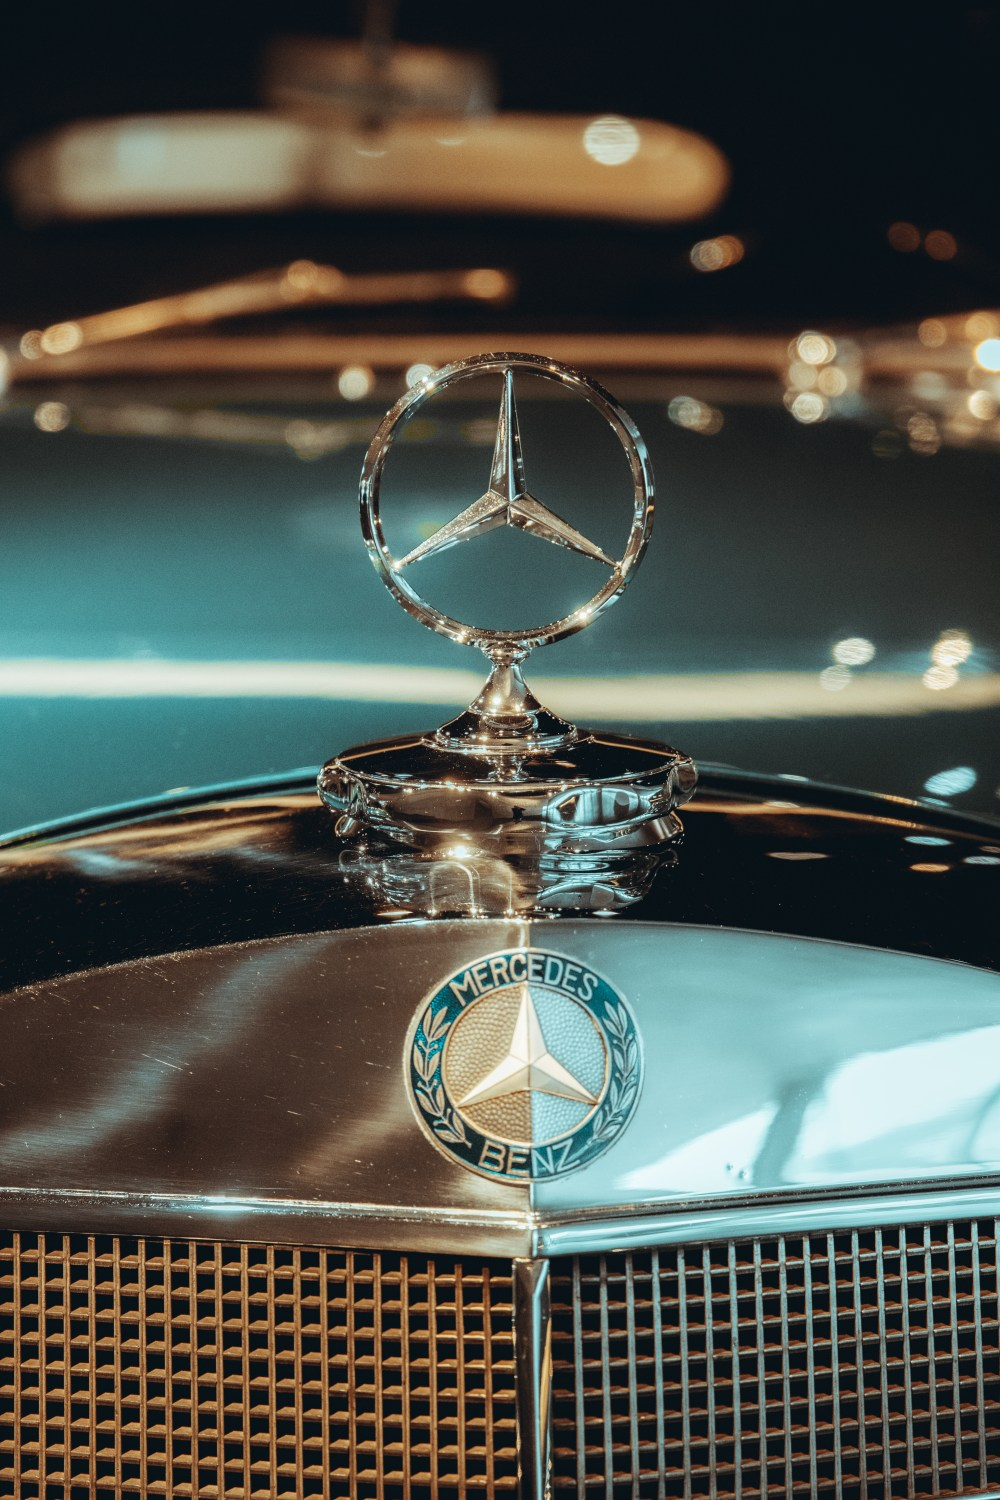 You can select slideshow option and enjoy a nice mercedes wallpapers show. 500 Mercedes Pictures Download Free Images On Unsplash